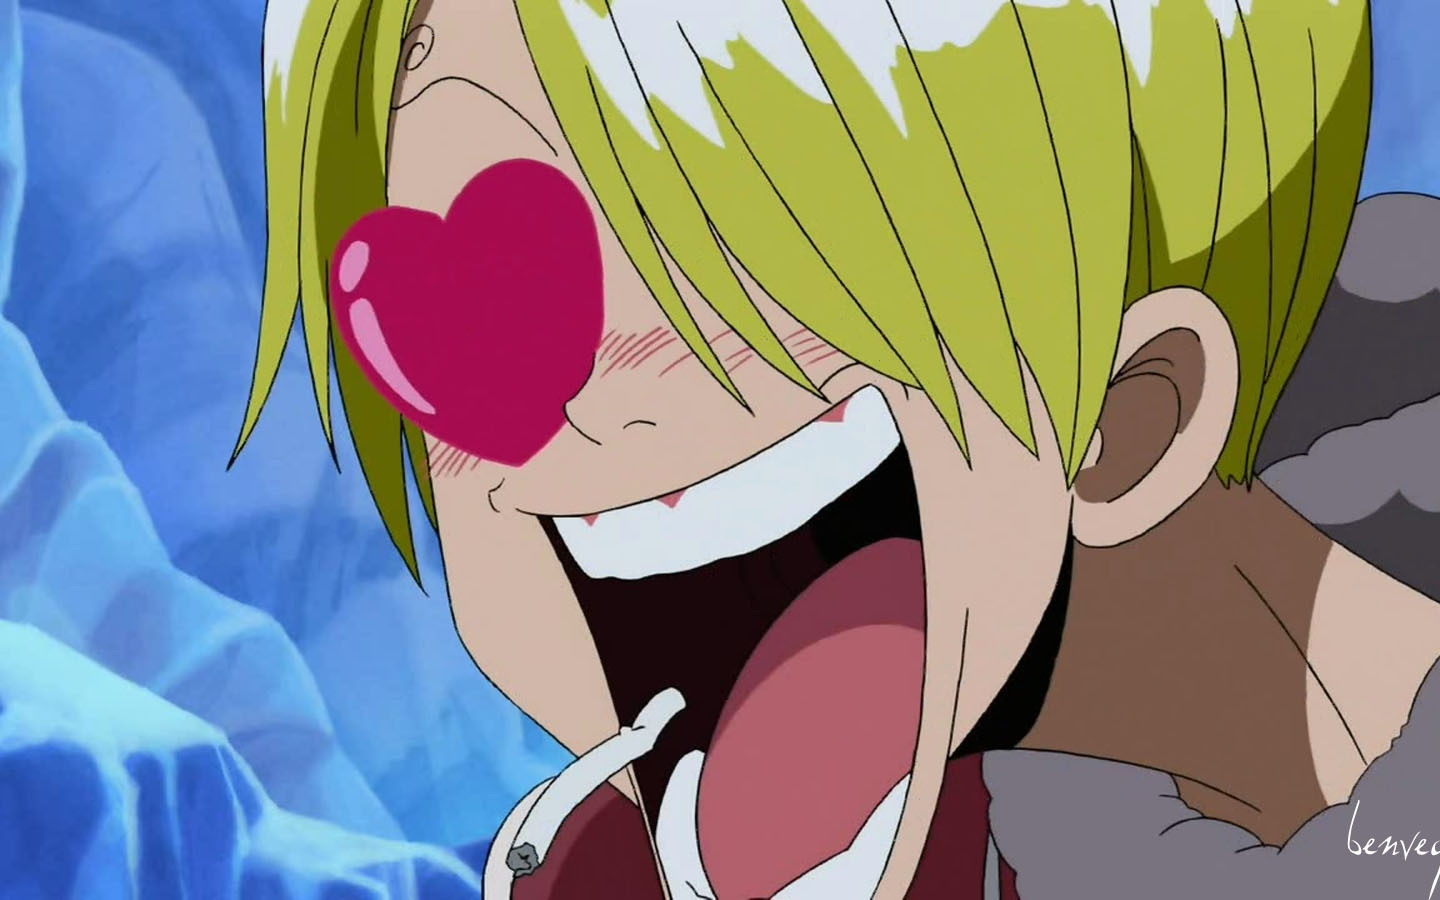 Sanji One Piece Wallpaper 7026780 1440x900 Download Hd Wallpaper Wallpapertip